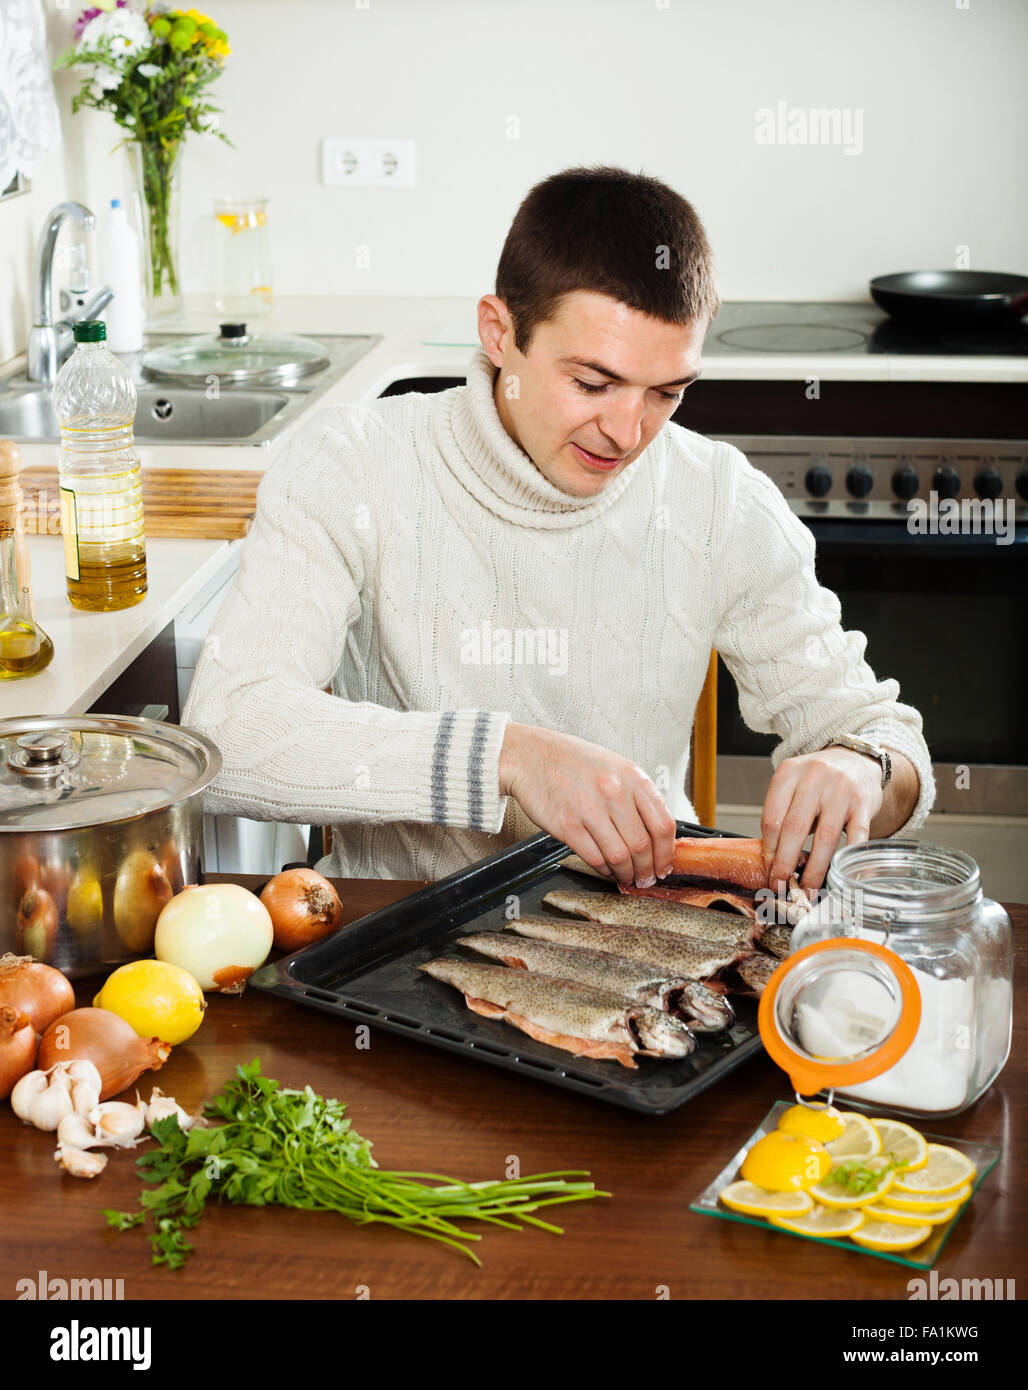 Home Kitchen Cooking Guy Cooking Raw Fish In Roasting Pan At Home Kitchen Stock Photo